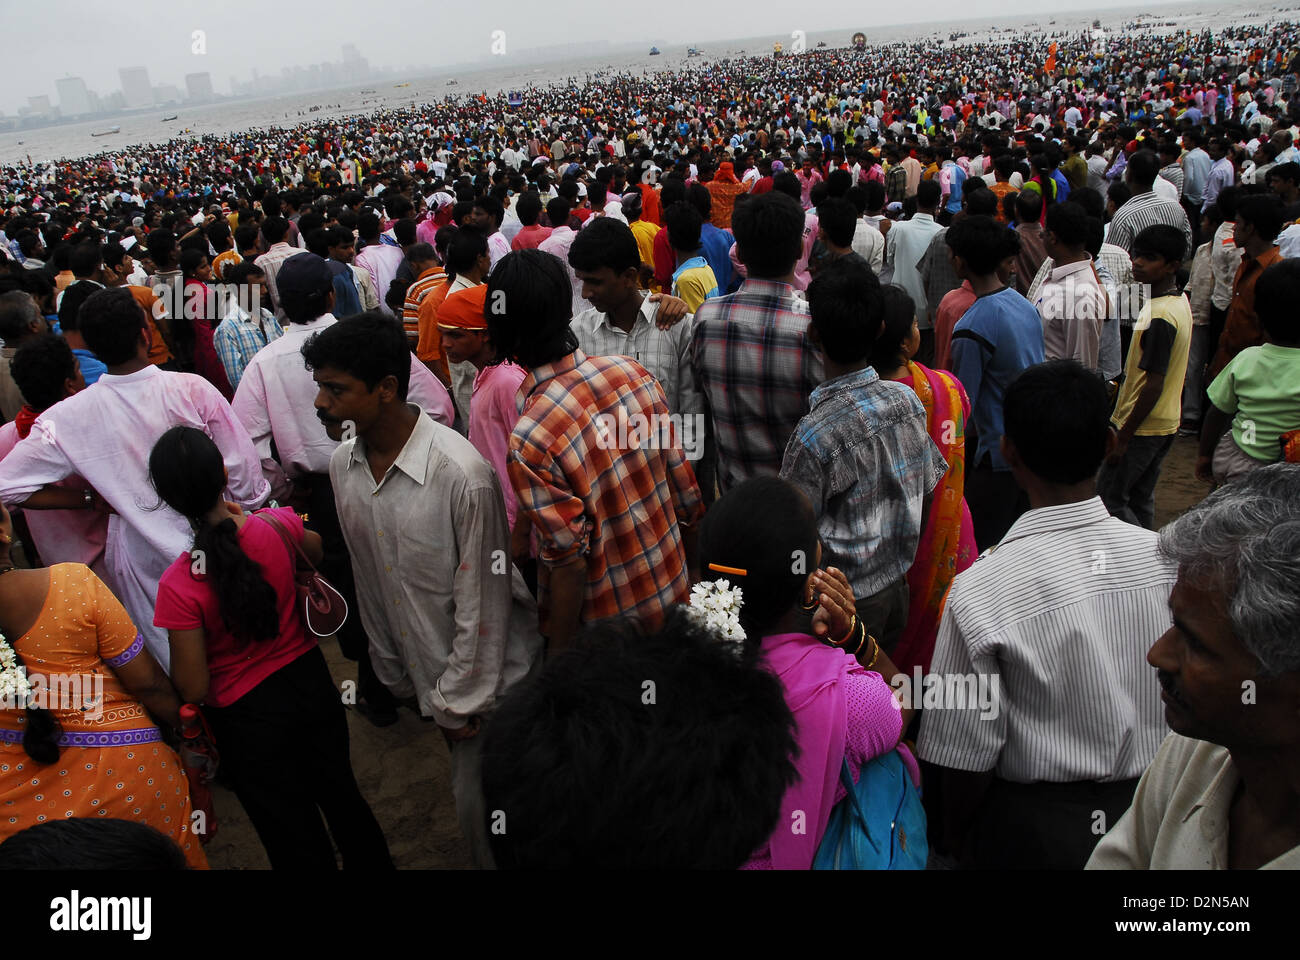 People come together in large numbers for Ganesh immersion, Mumbai, Maharashtra, India, Asia - Stock Image